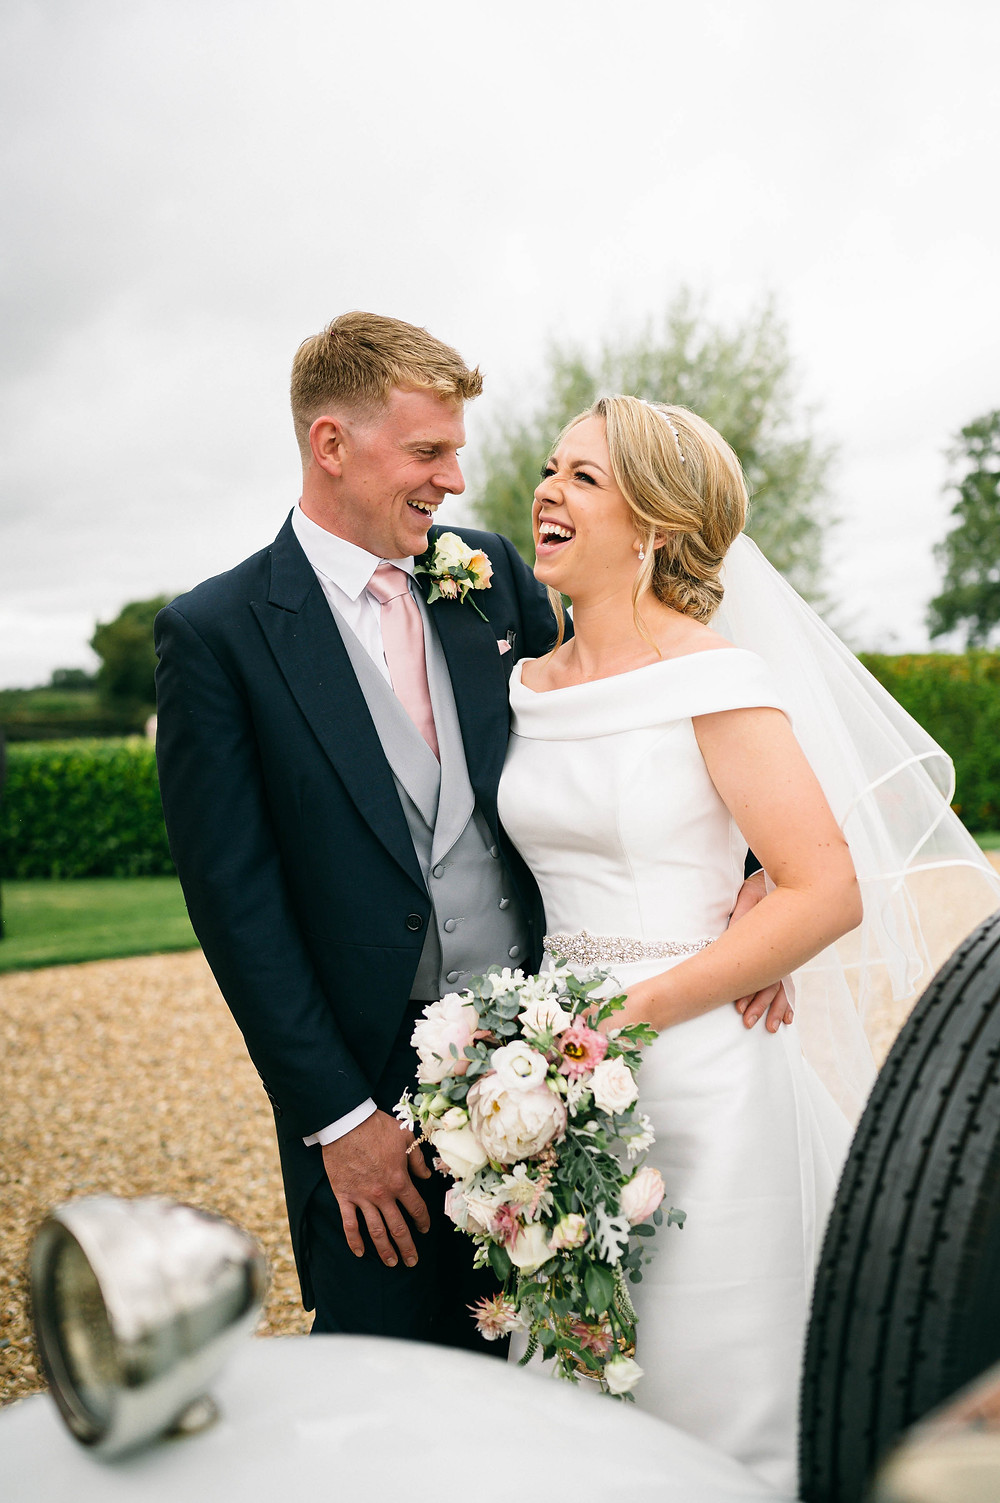 Epps Photography, Nantwich Photographer, Nantwich Wedding Photography, Nantwich wedding photographer, wedding photography Cheshire,